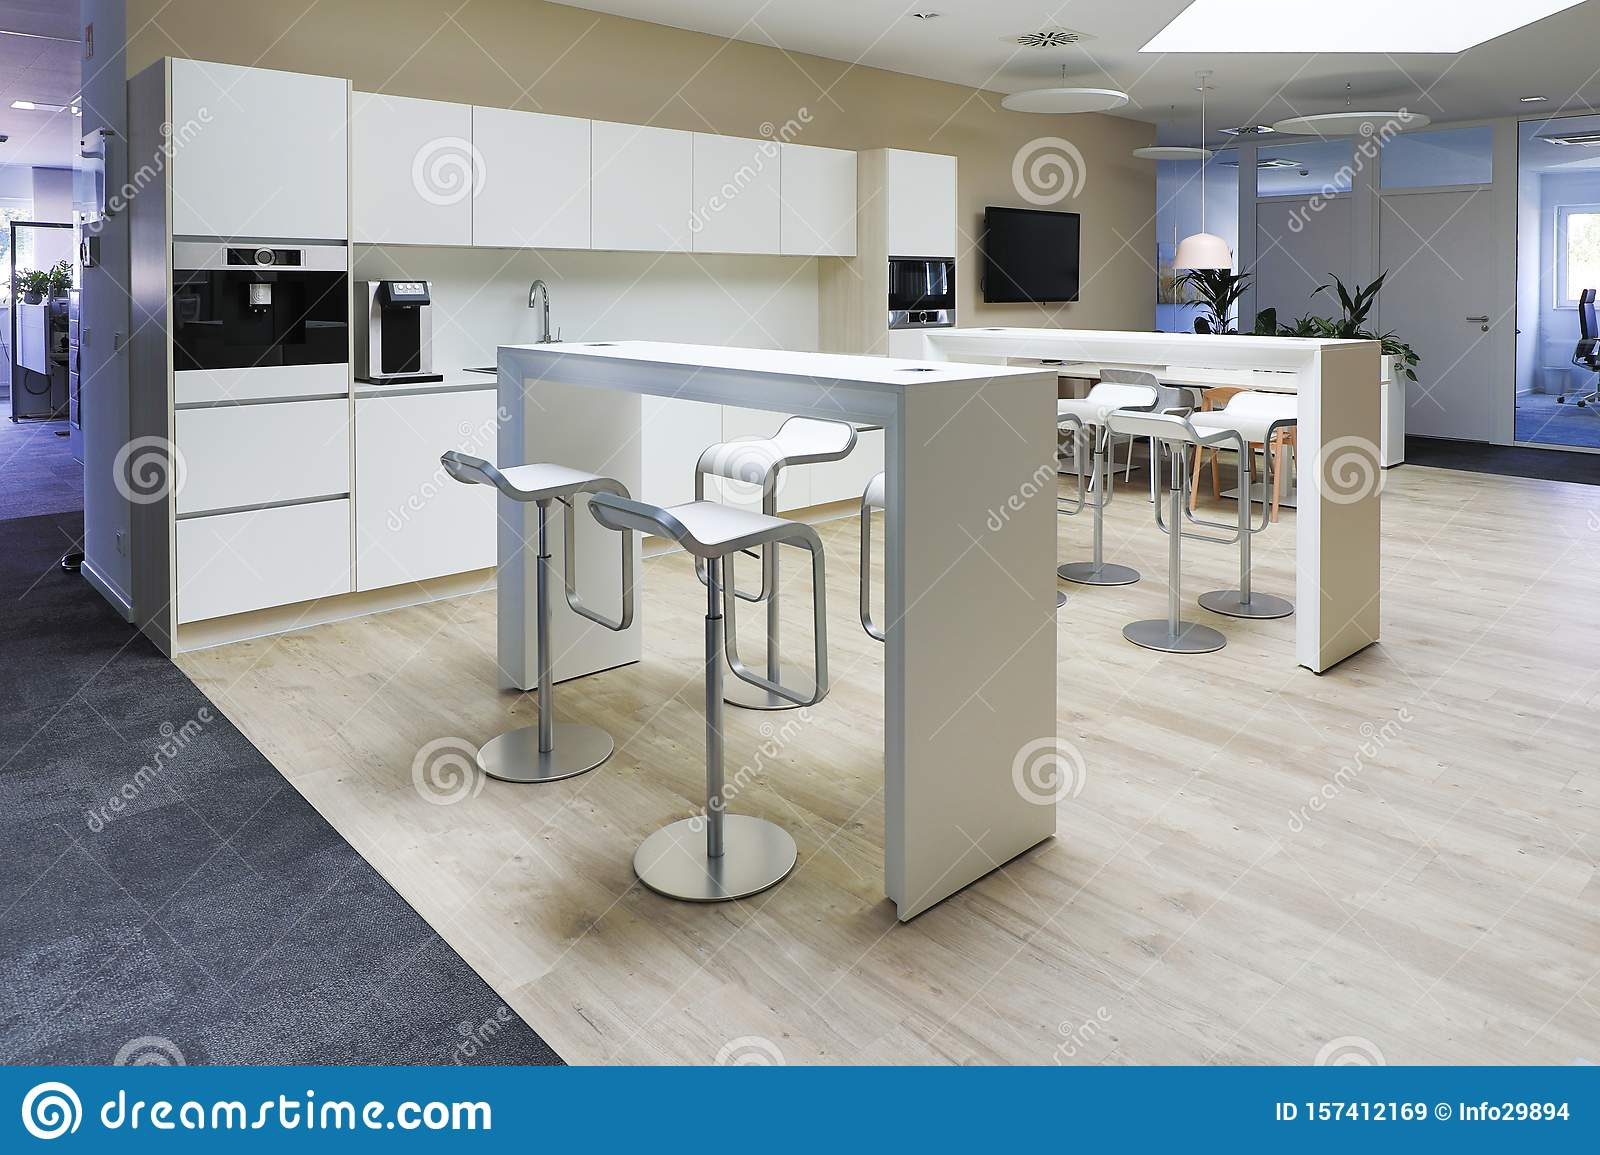 A Modern Office Floor There Is A Beautiful Office Kitchen For The Employees Stock Image Image Of Communication Building 157412169